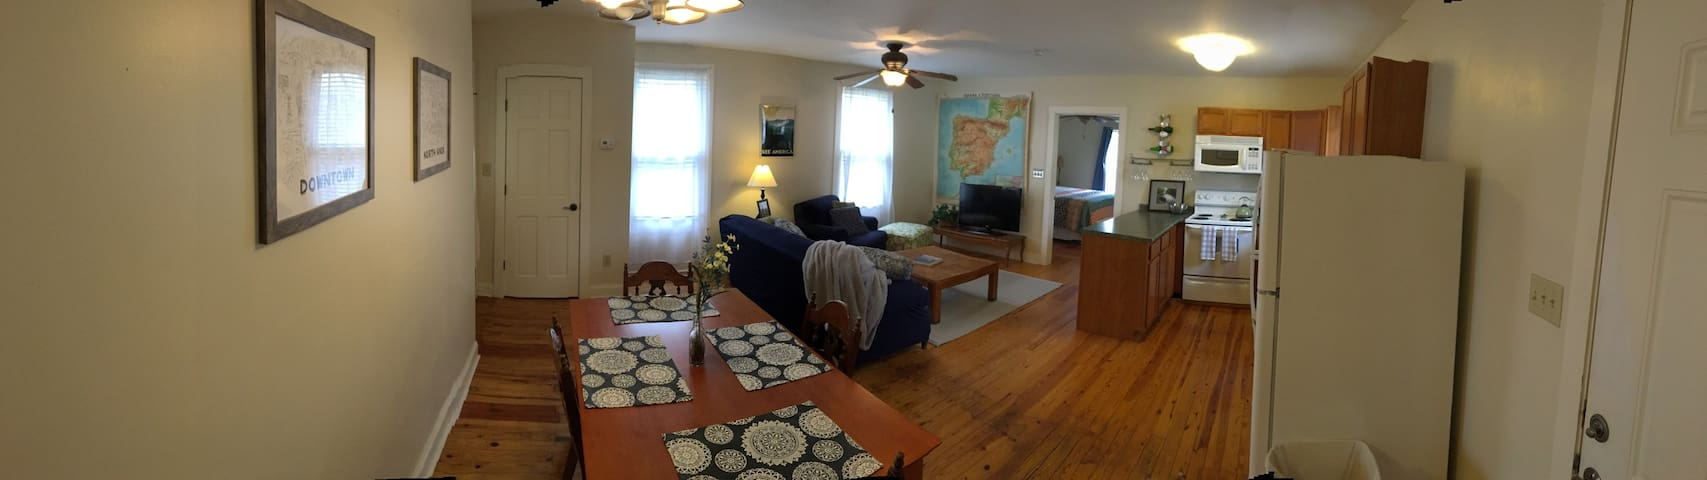 Cozy and Convenient Apartment in Old North Knox - Knoxville - Lejlighed